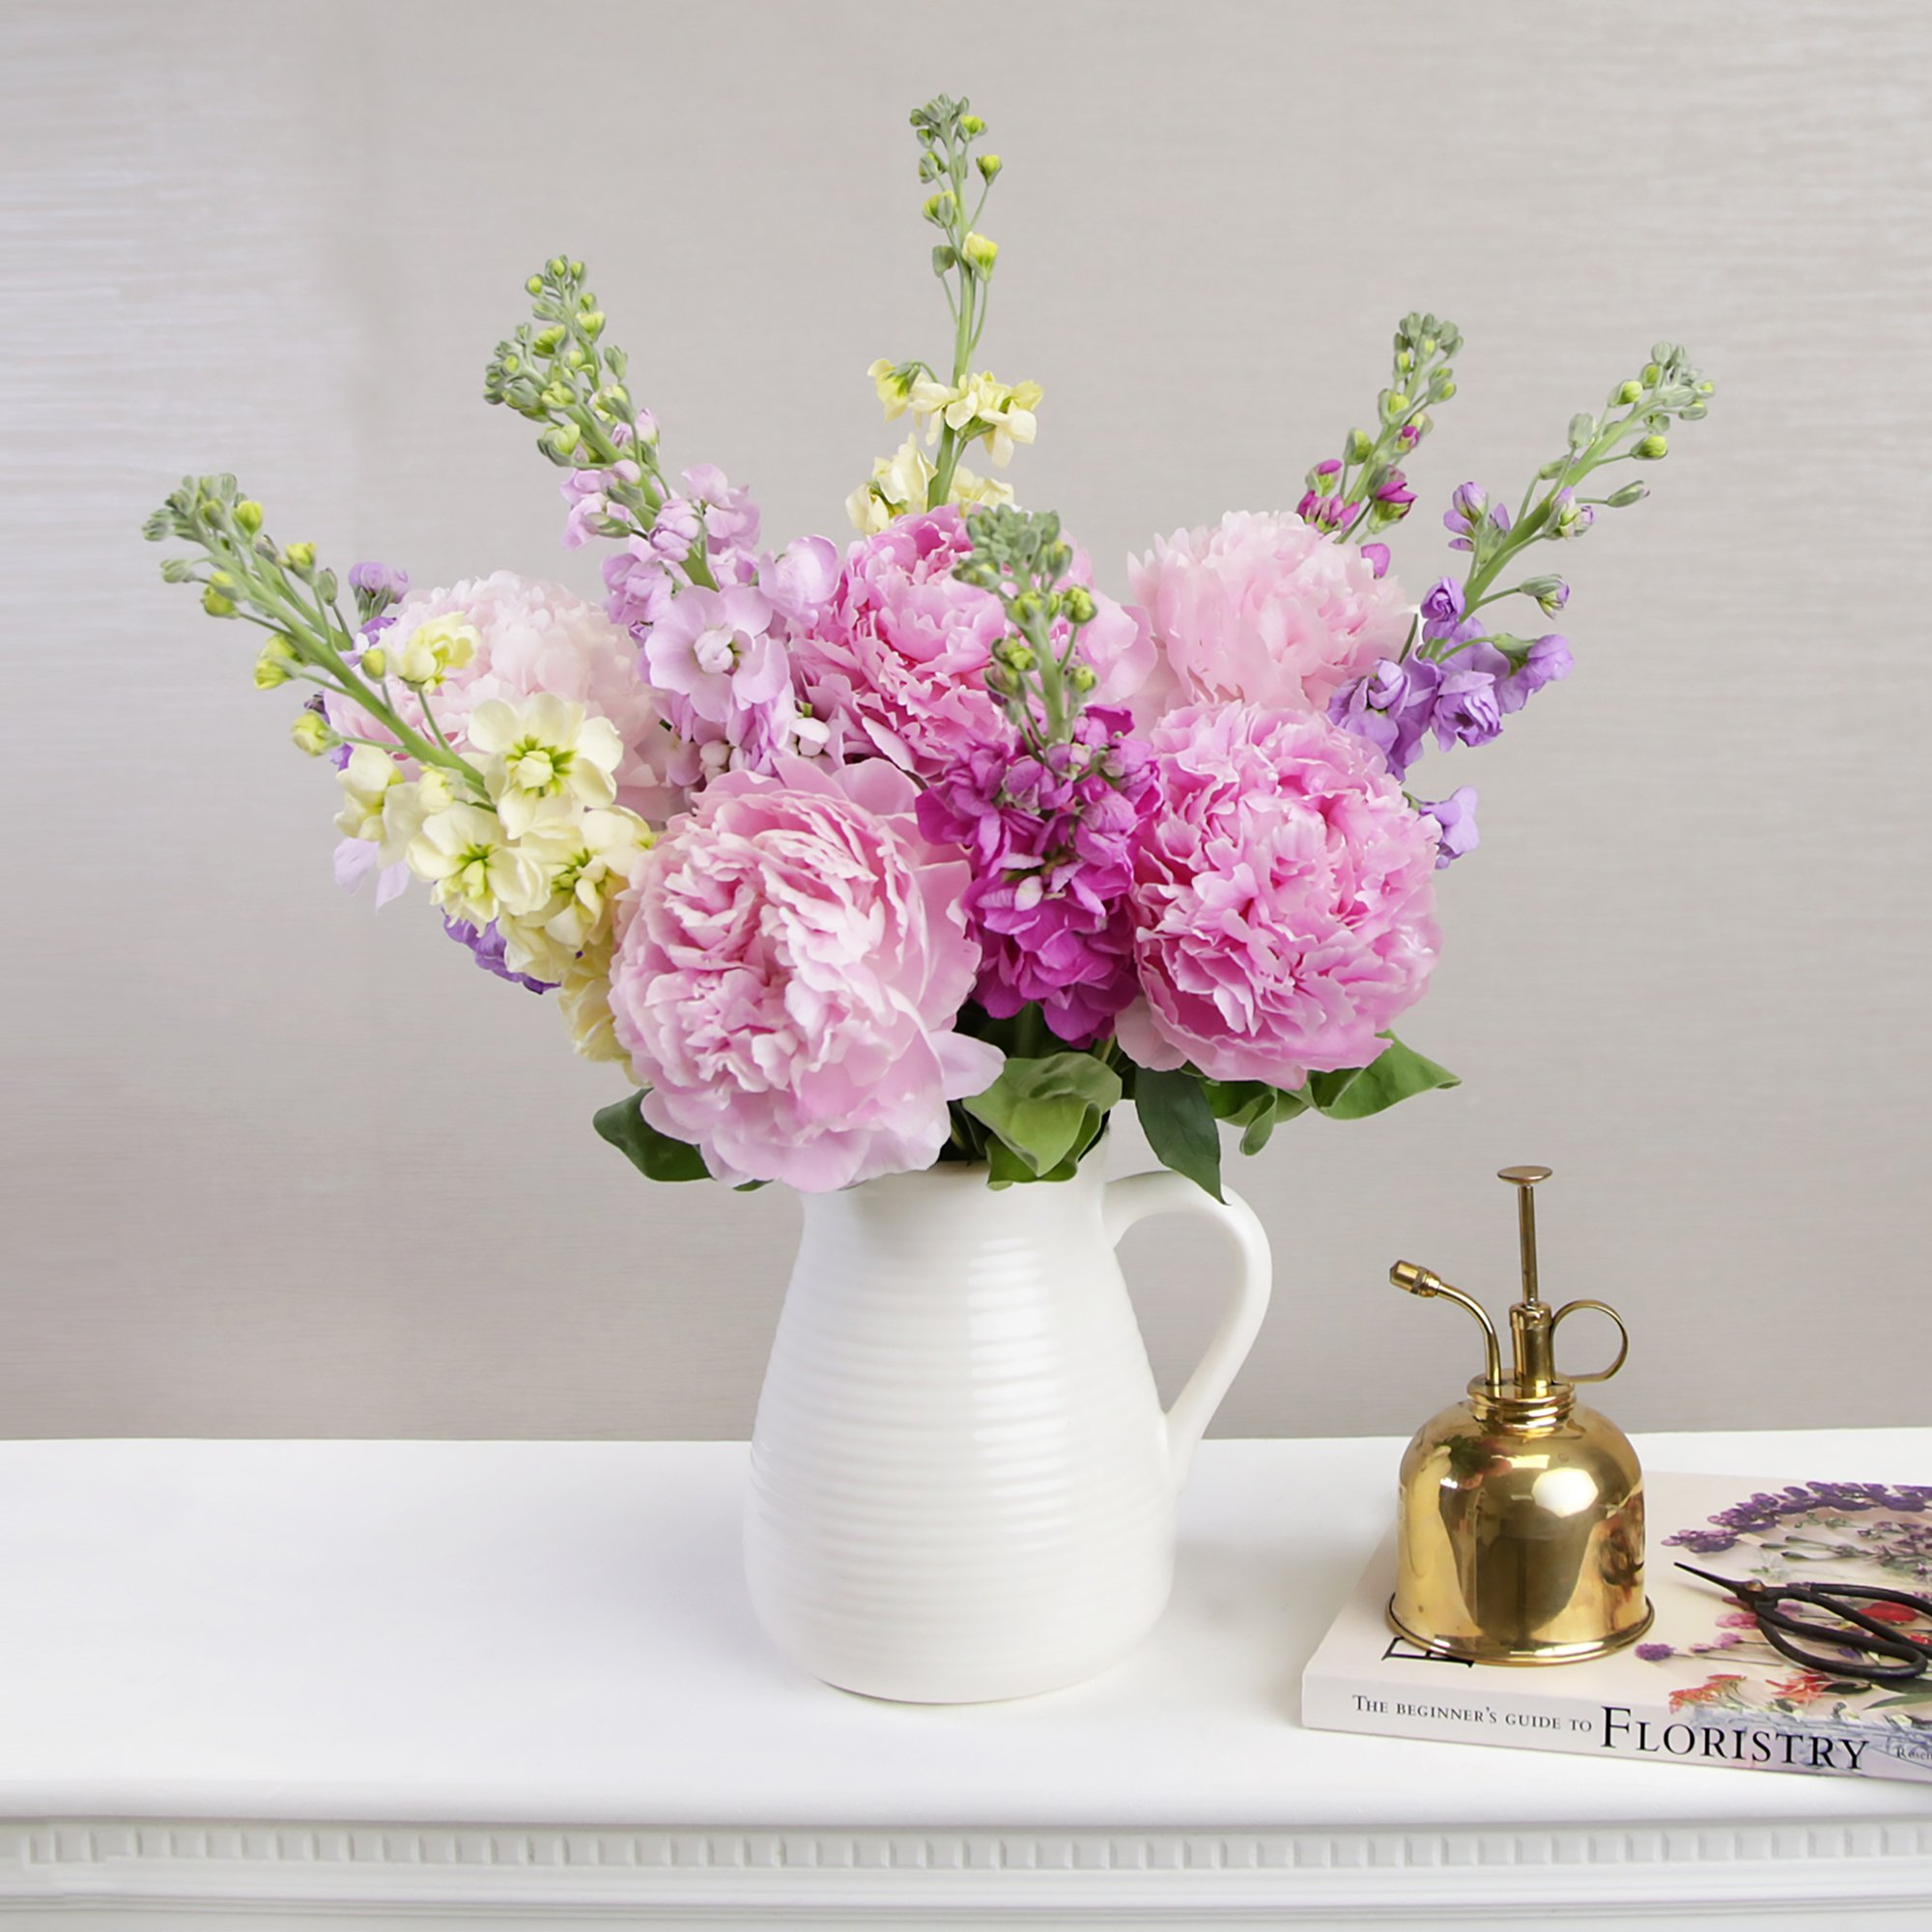 Flowers - The May - Image 2